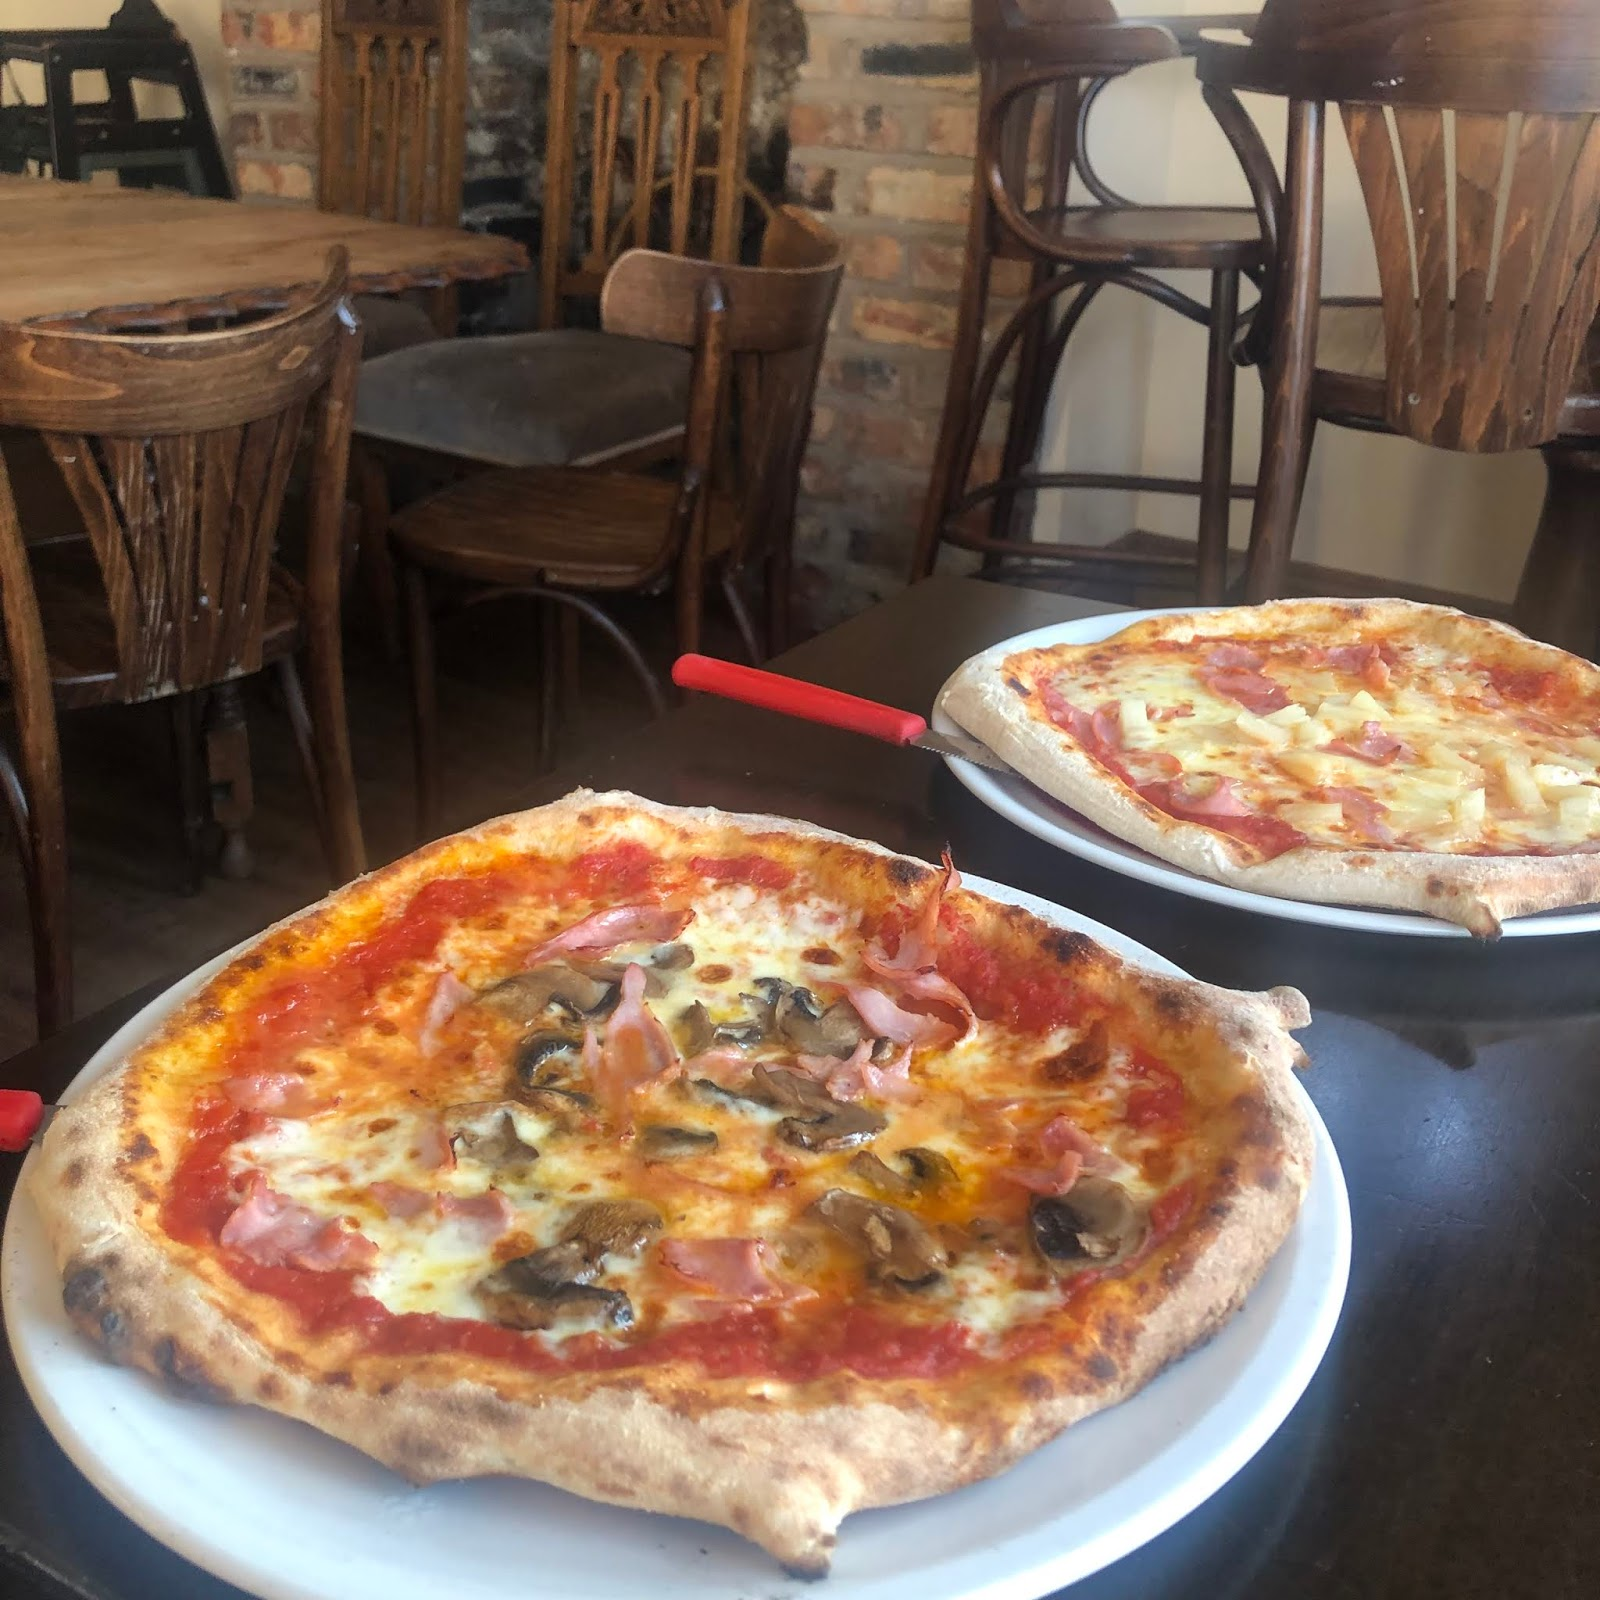 Pizza at Di Meos - My August Days